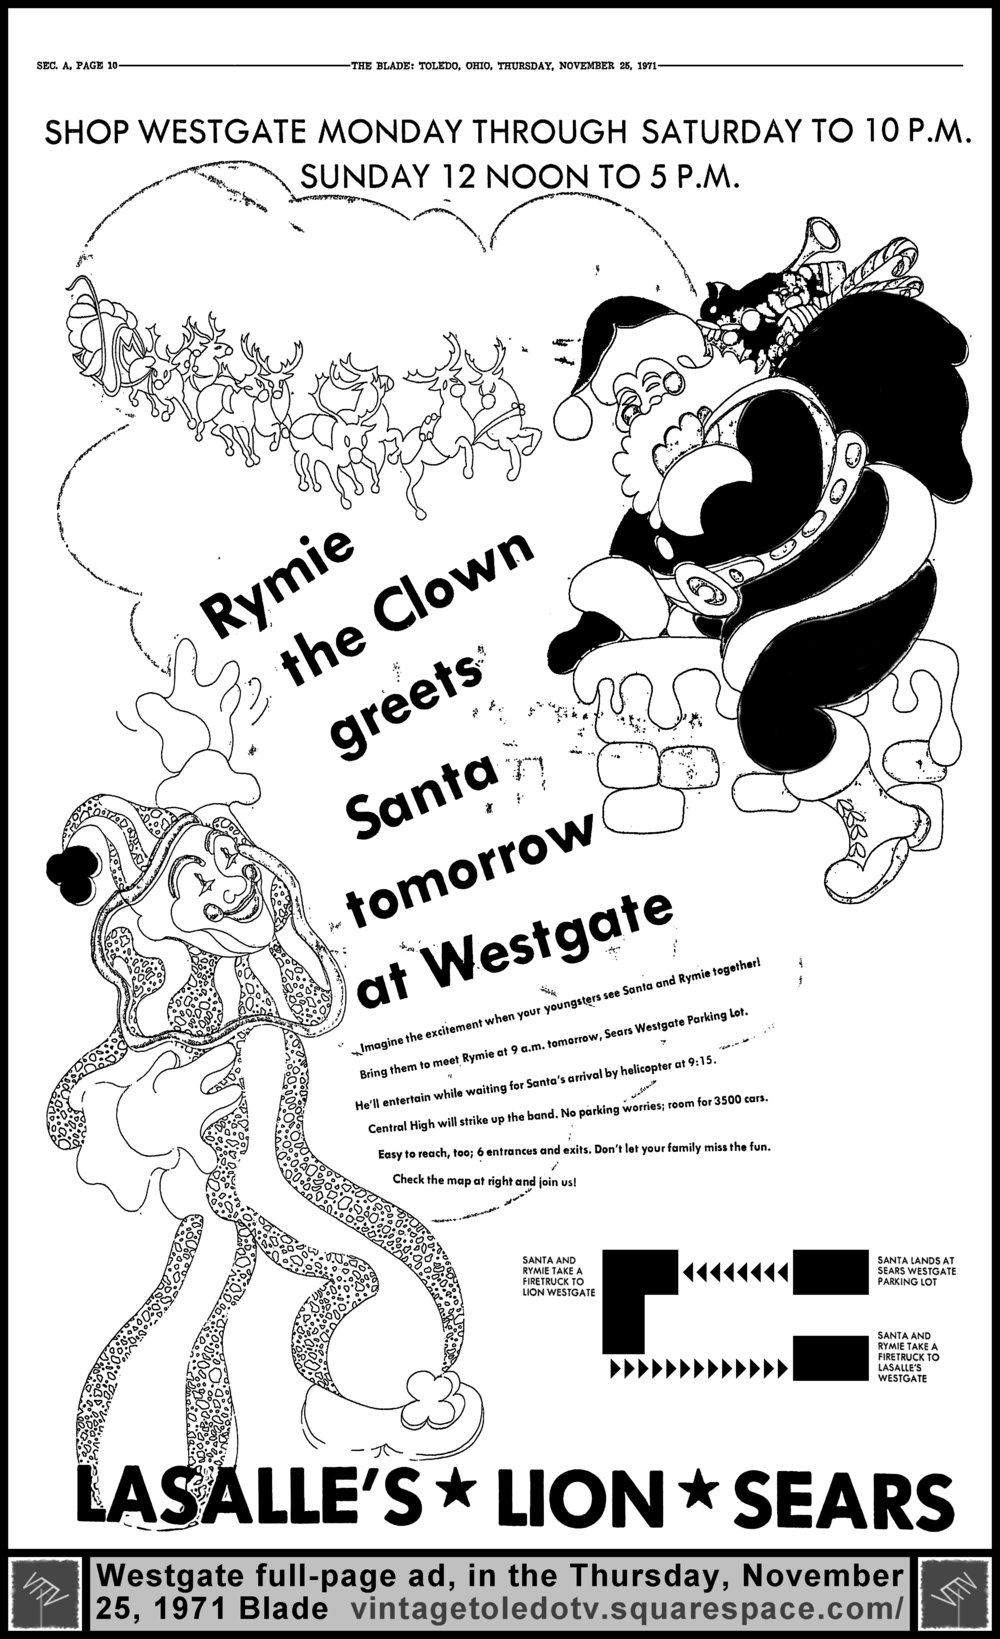 multiple image galleries 1971 Sears Christmas Catalog rymie the clown greets santa tomorrow at westgate thursday 11 25 71